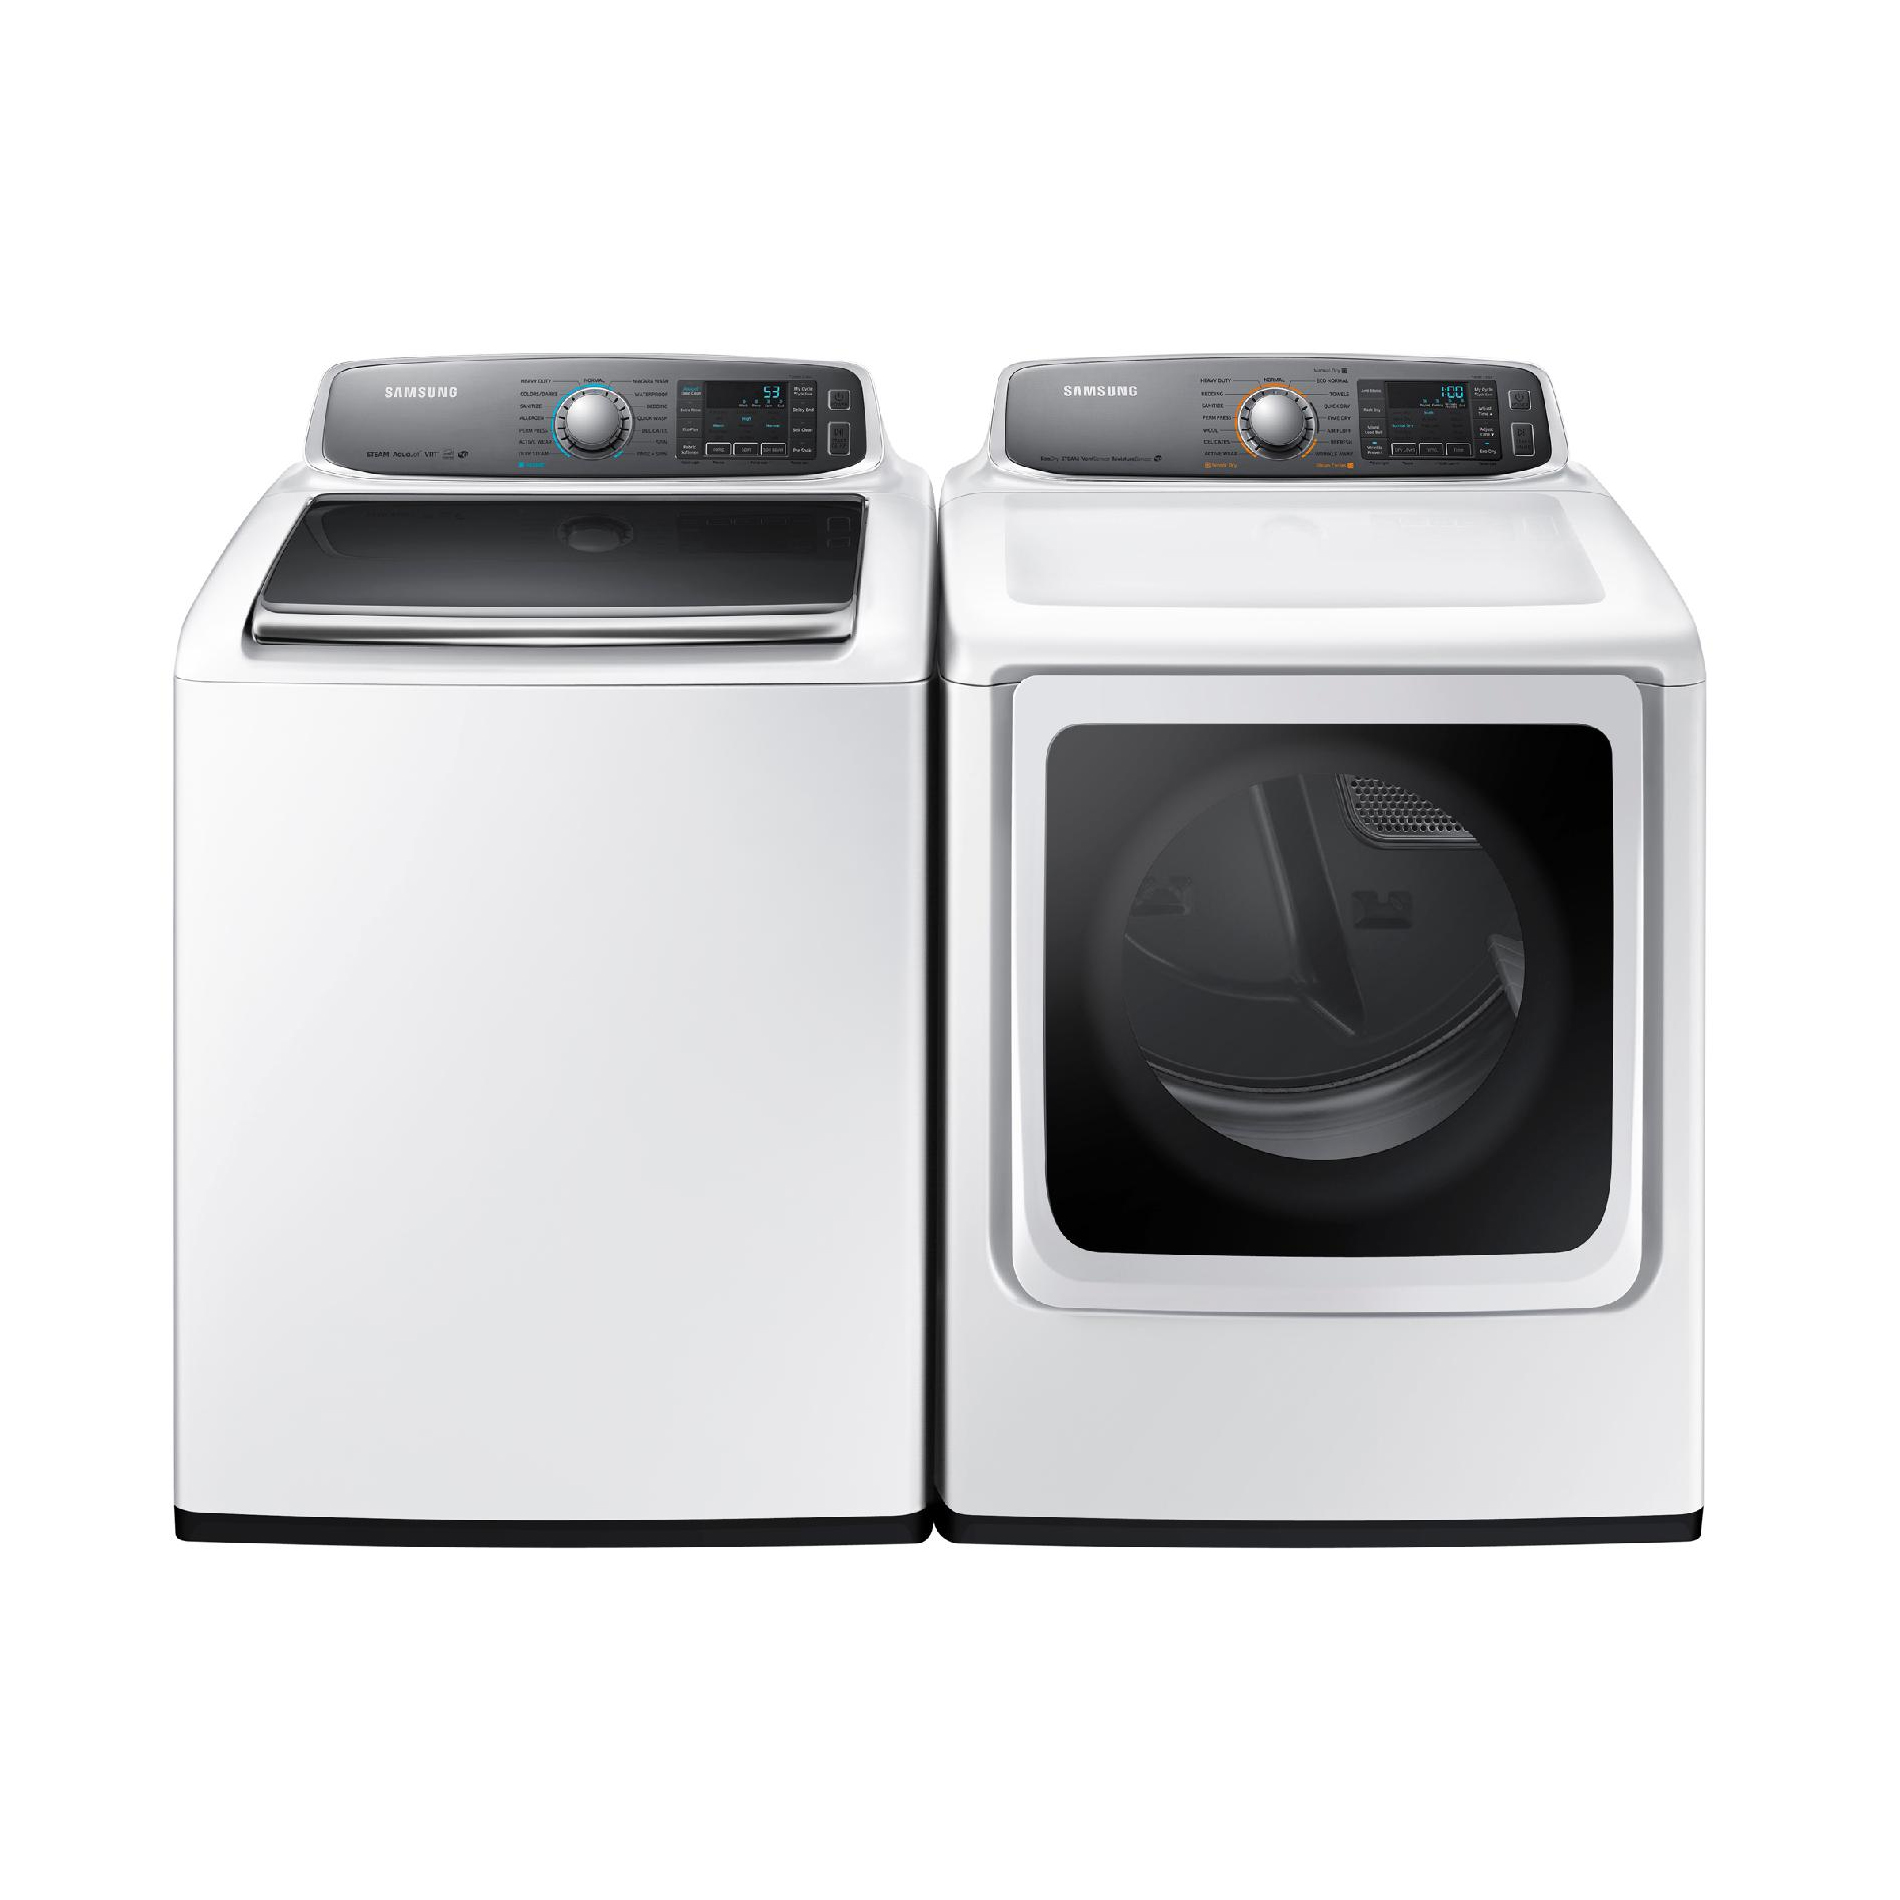 Samsung WA56H9000AW 5.6 cu. ft. Top-Load Washer - White